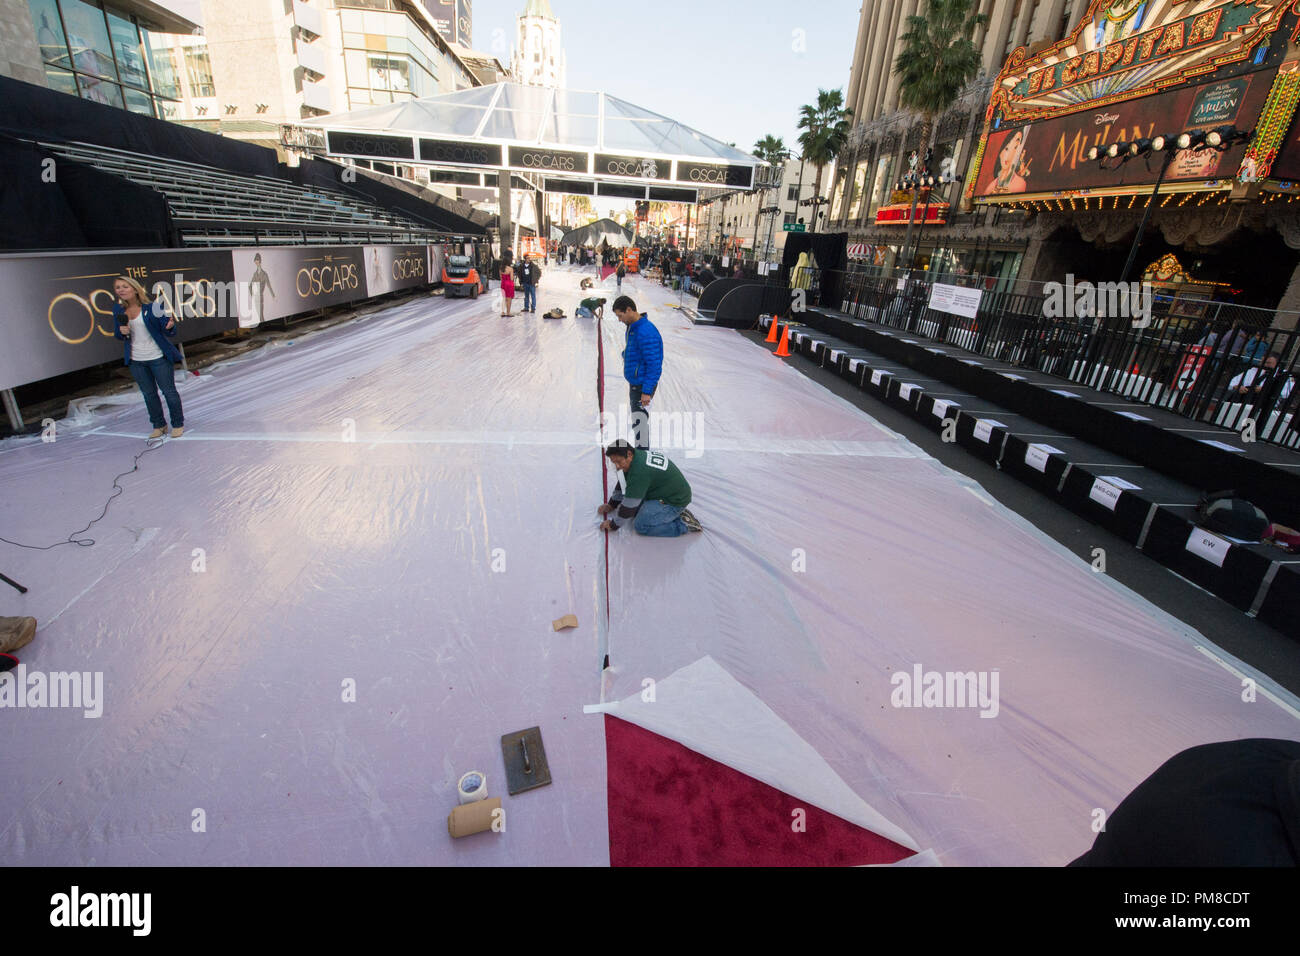 Preparations continue Thursday, February 21, for the The Oscars® which will be presented on Sunday, February 24, 2013, at the Dolby® Theatre and televised live by the ABC Television Network. Stock Photo